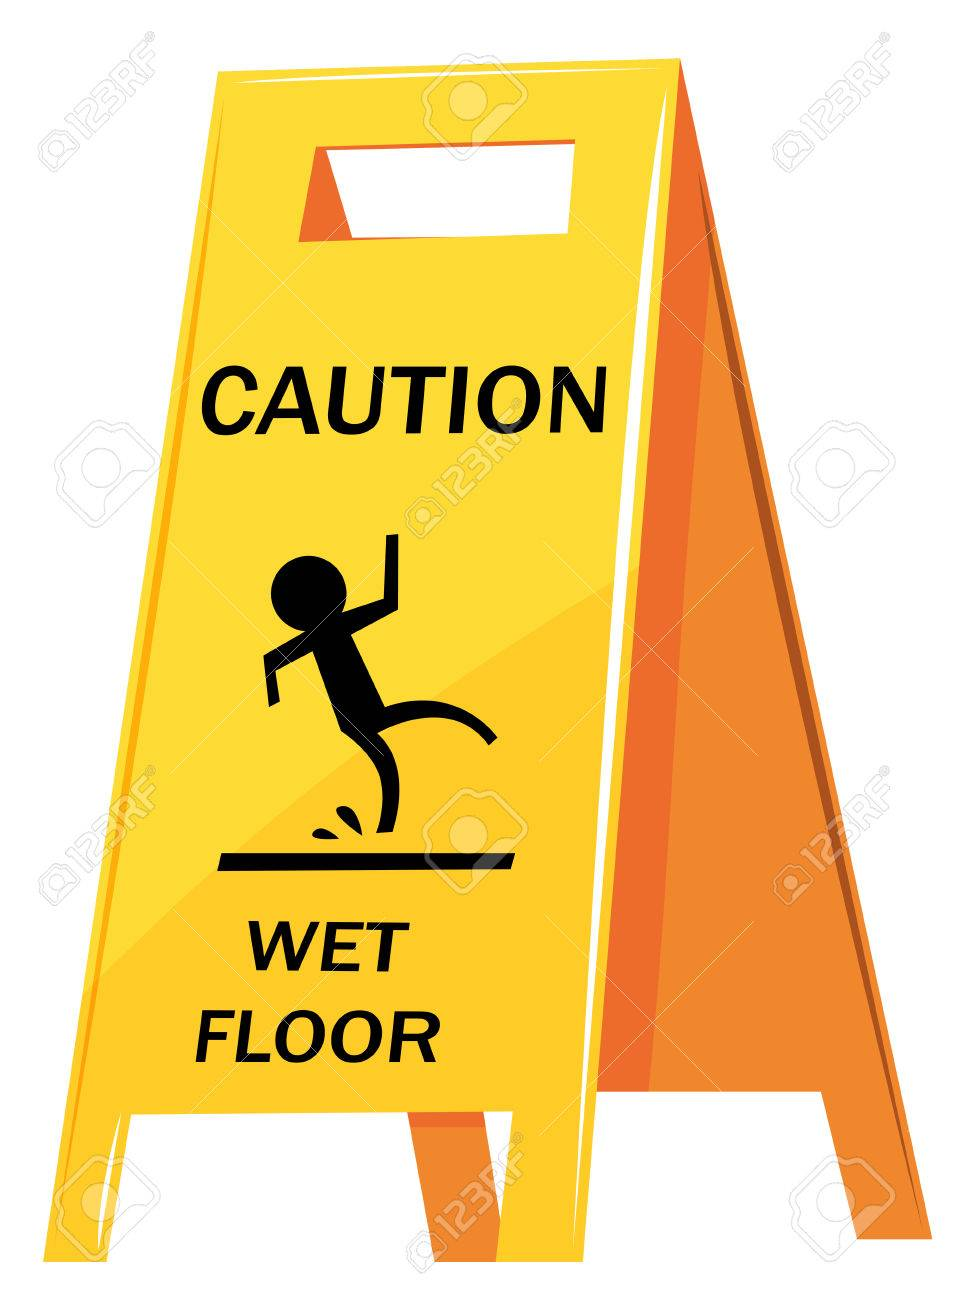 Caution sign warning about wet floor illustration.